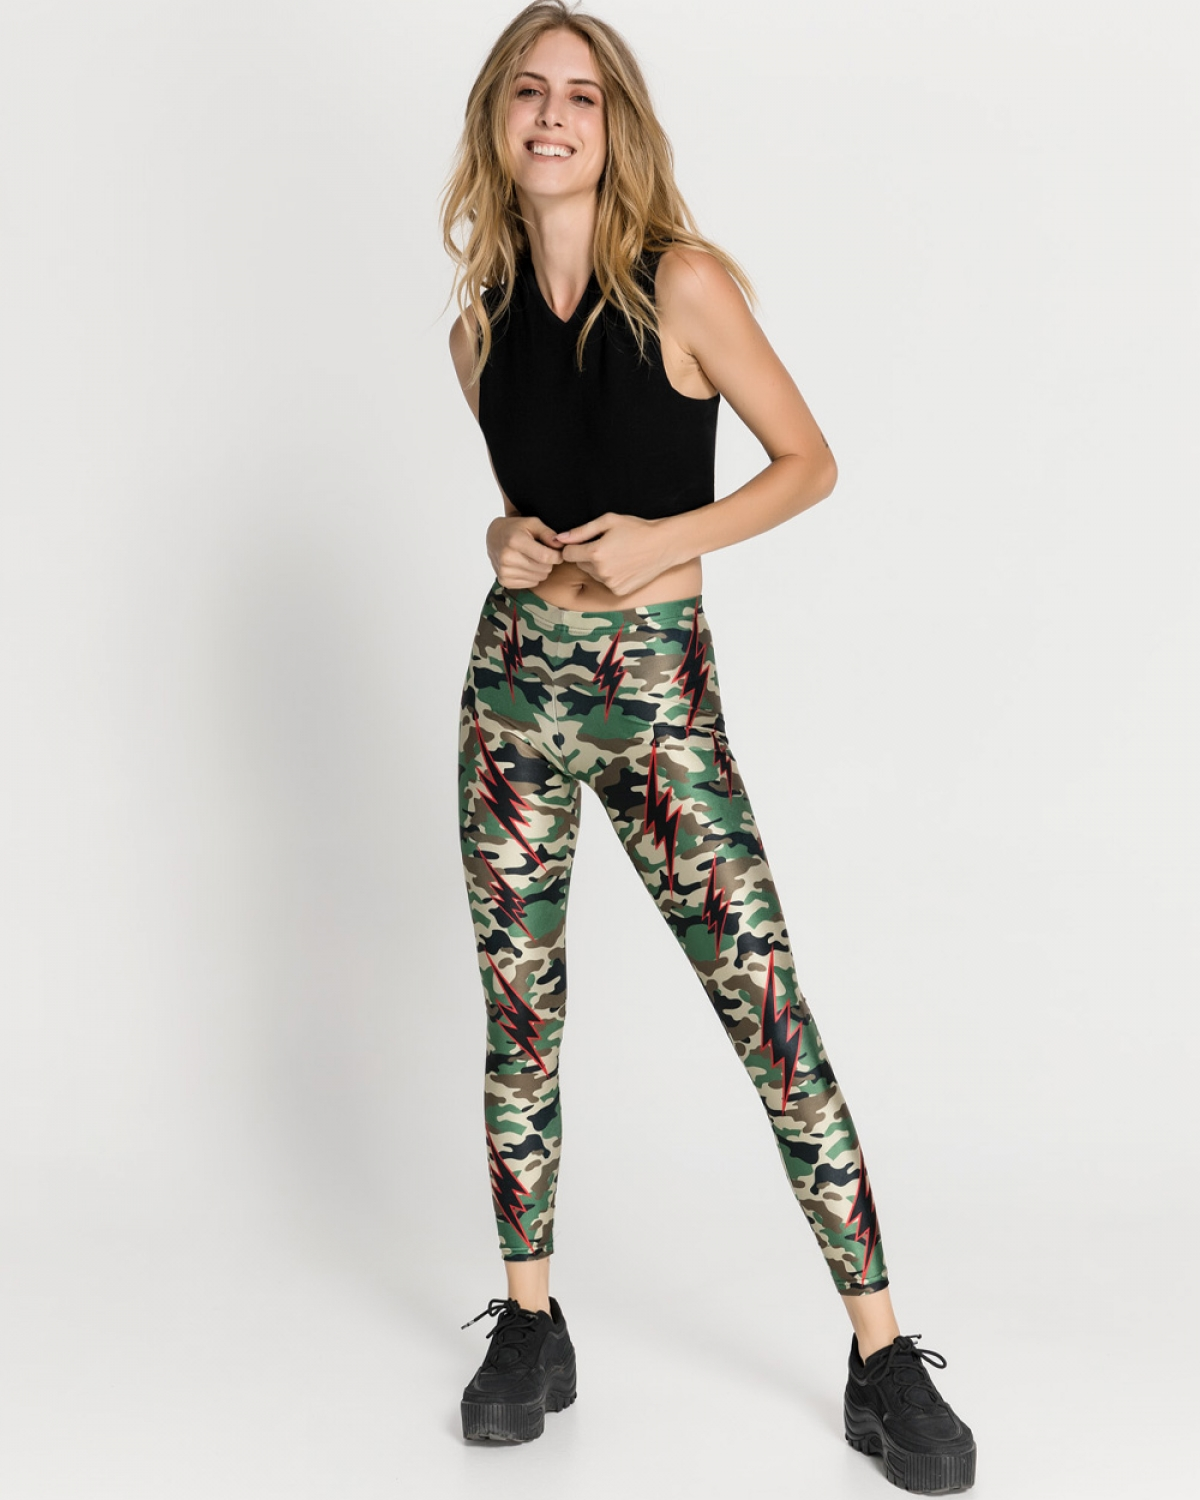 Camo Thunderstrikes Leggings